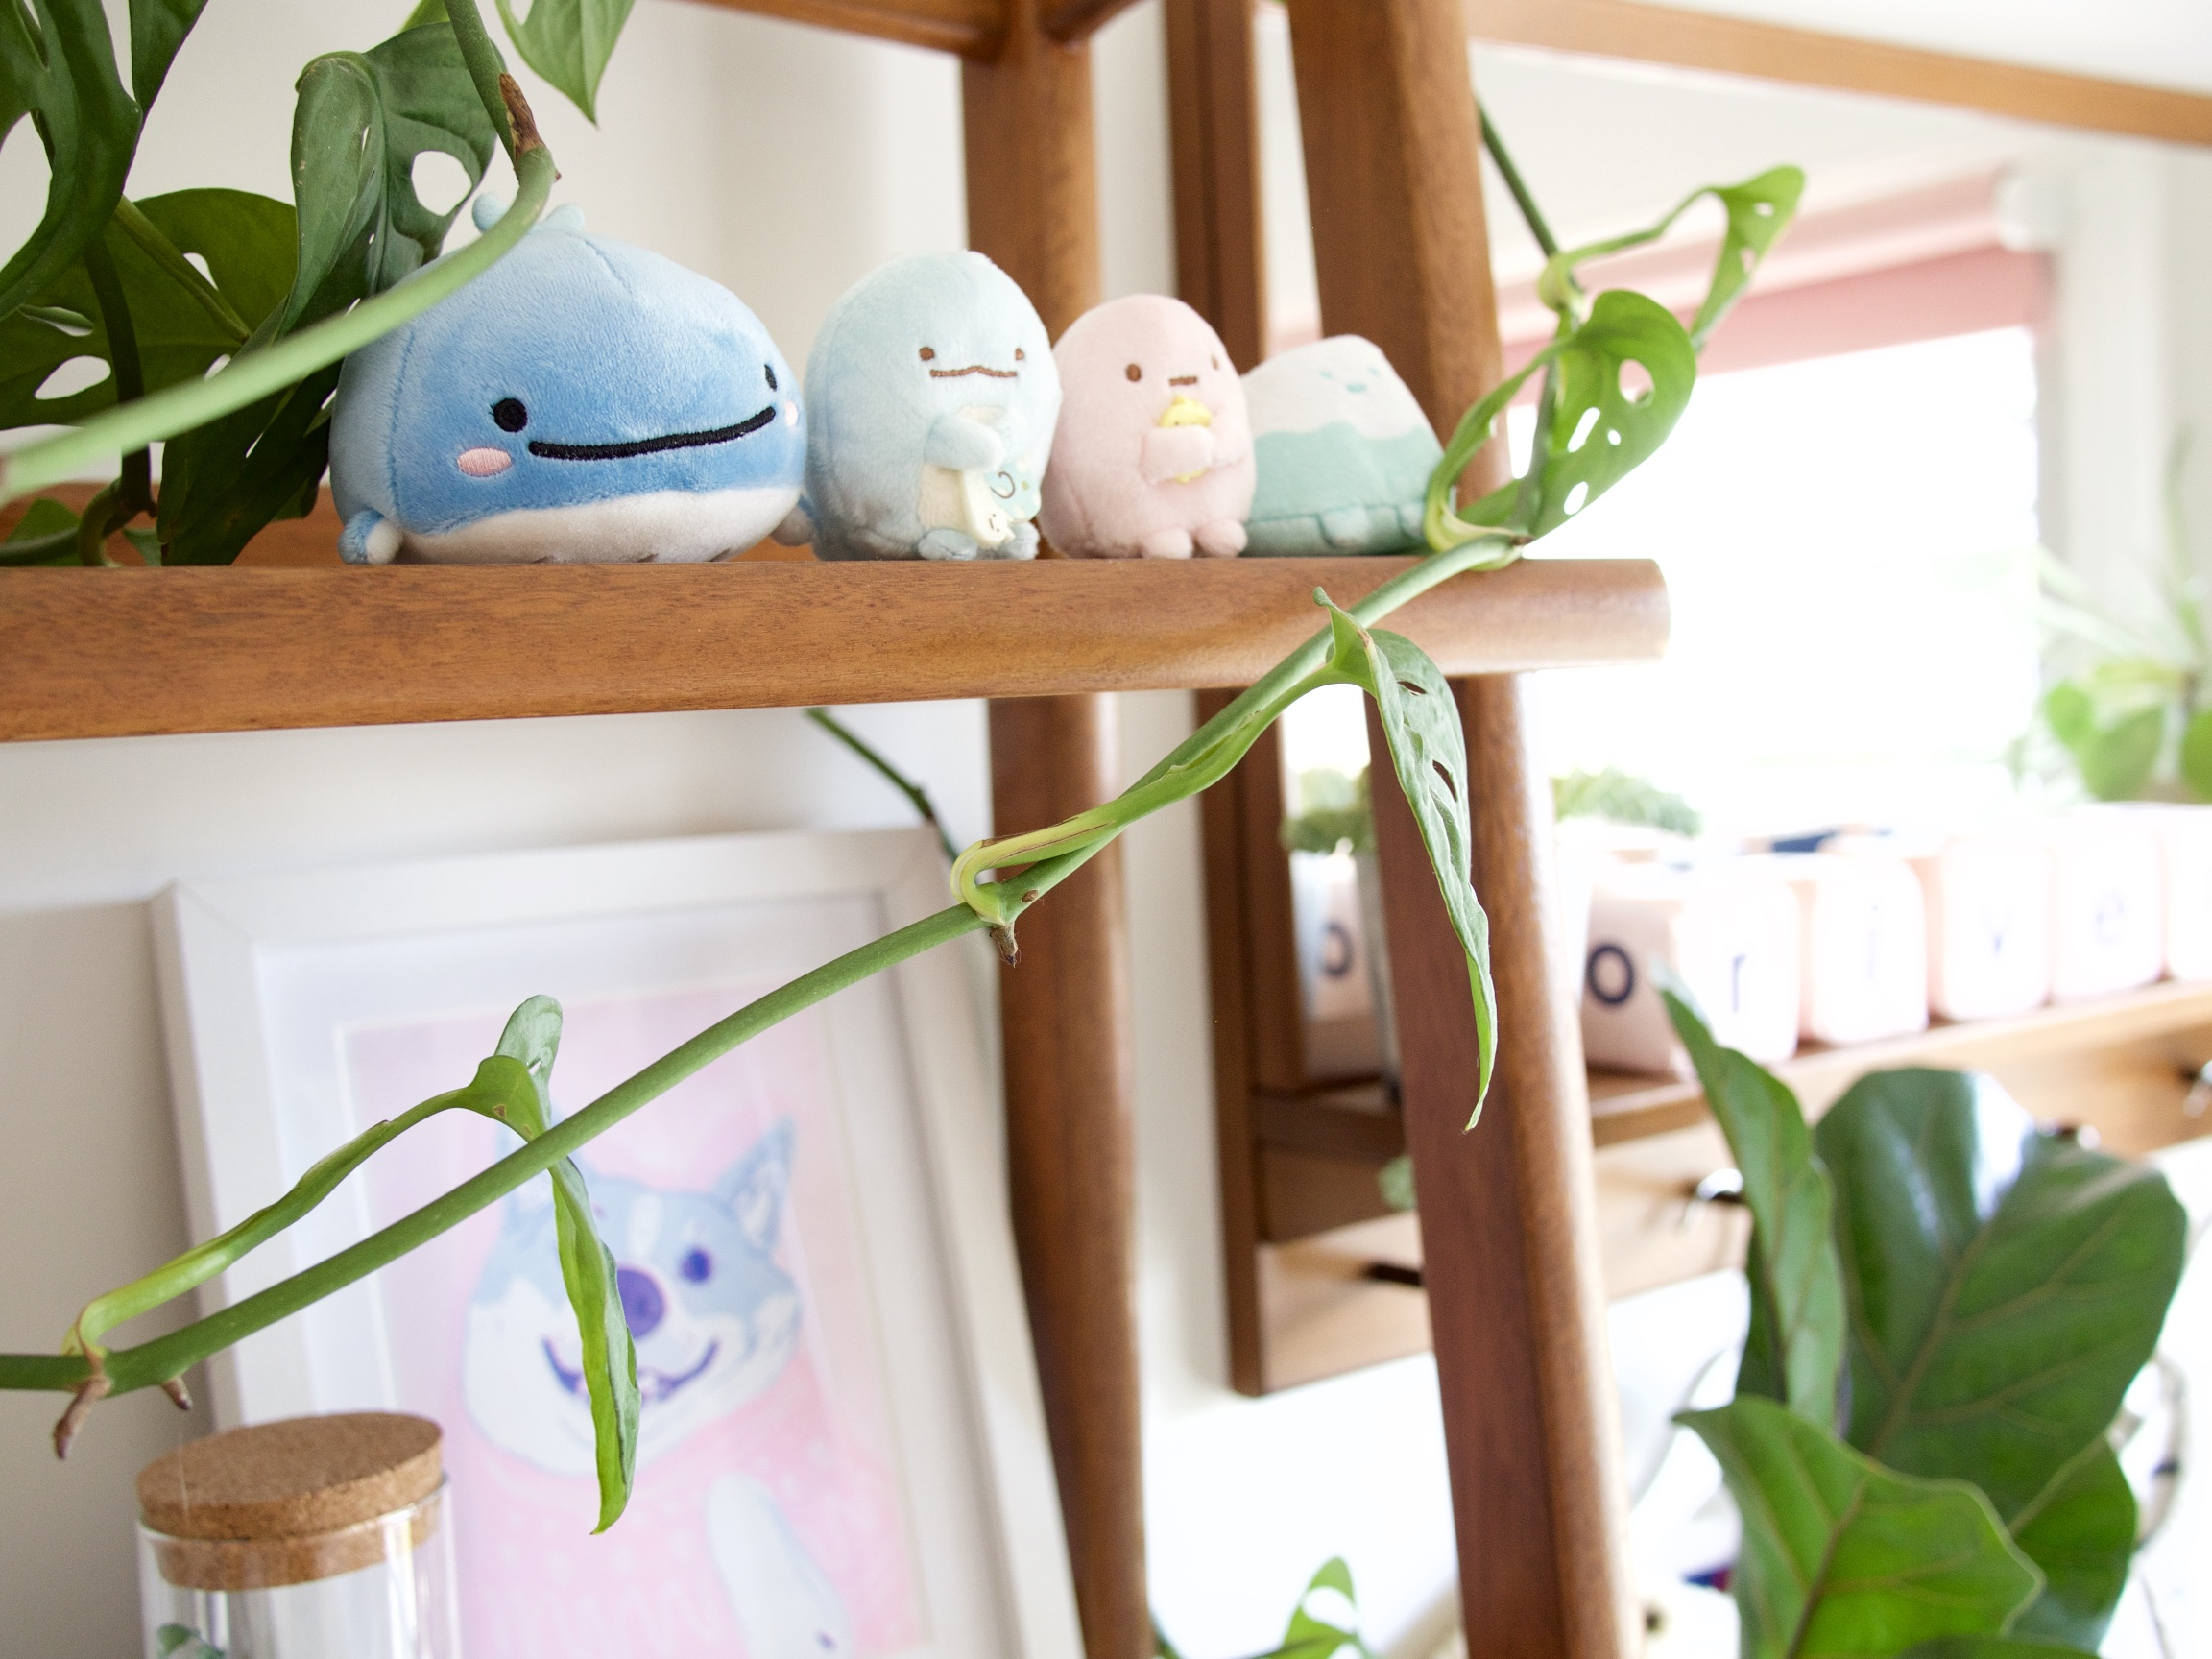 The Details: Sanrio creatures {picked up in Japan on our honeymoon for bub}; dog print; plant: Monstera Adansonii